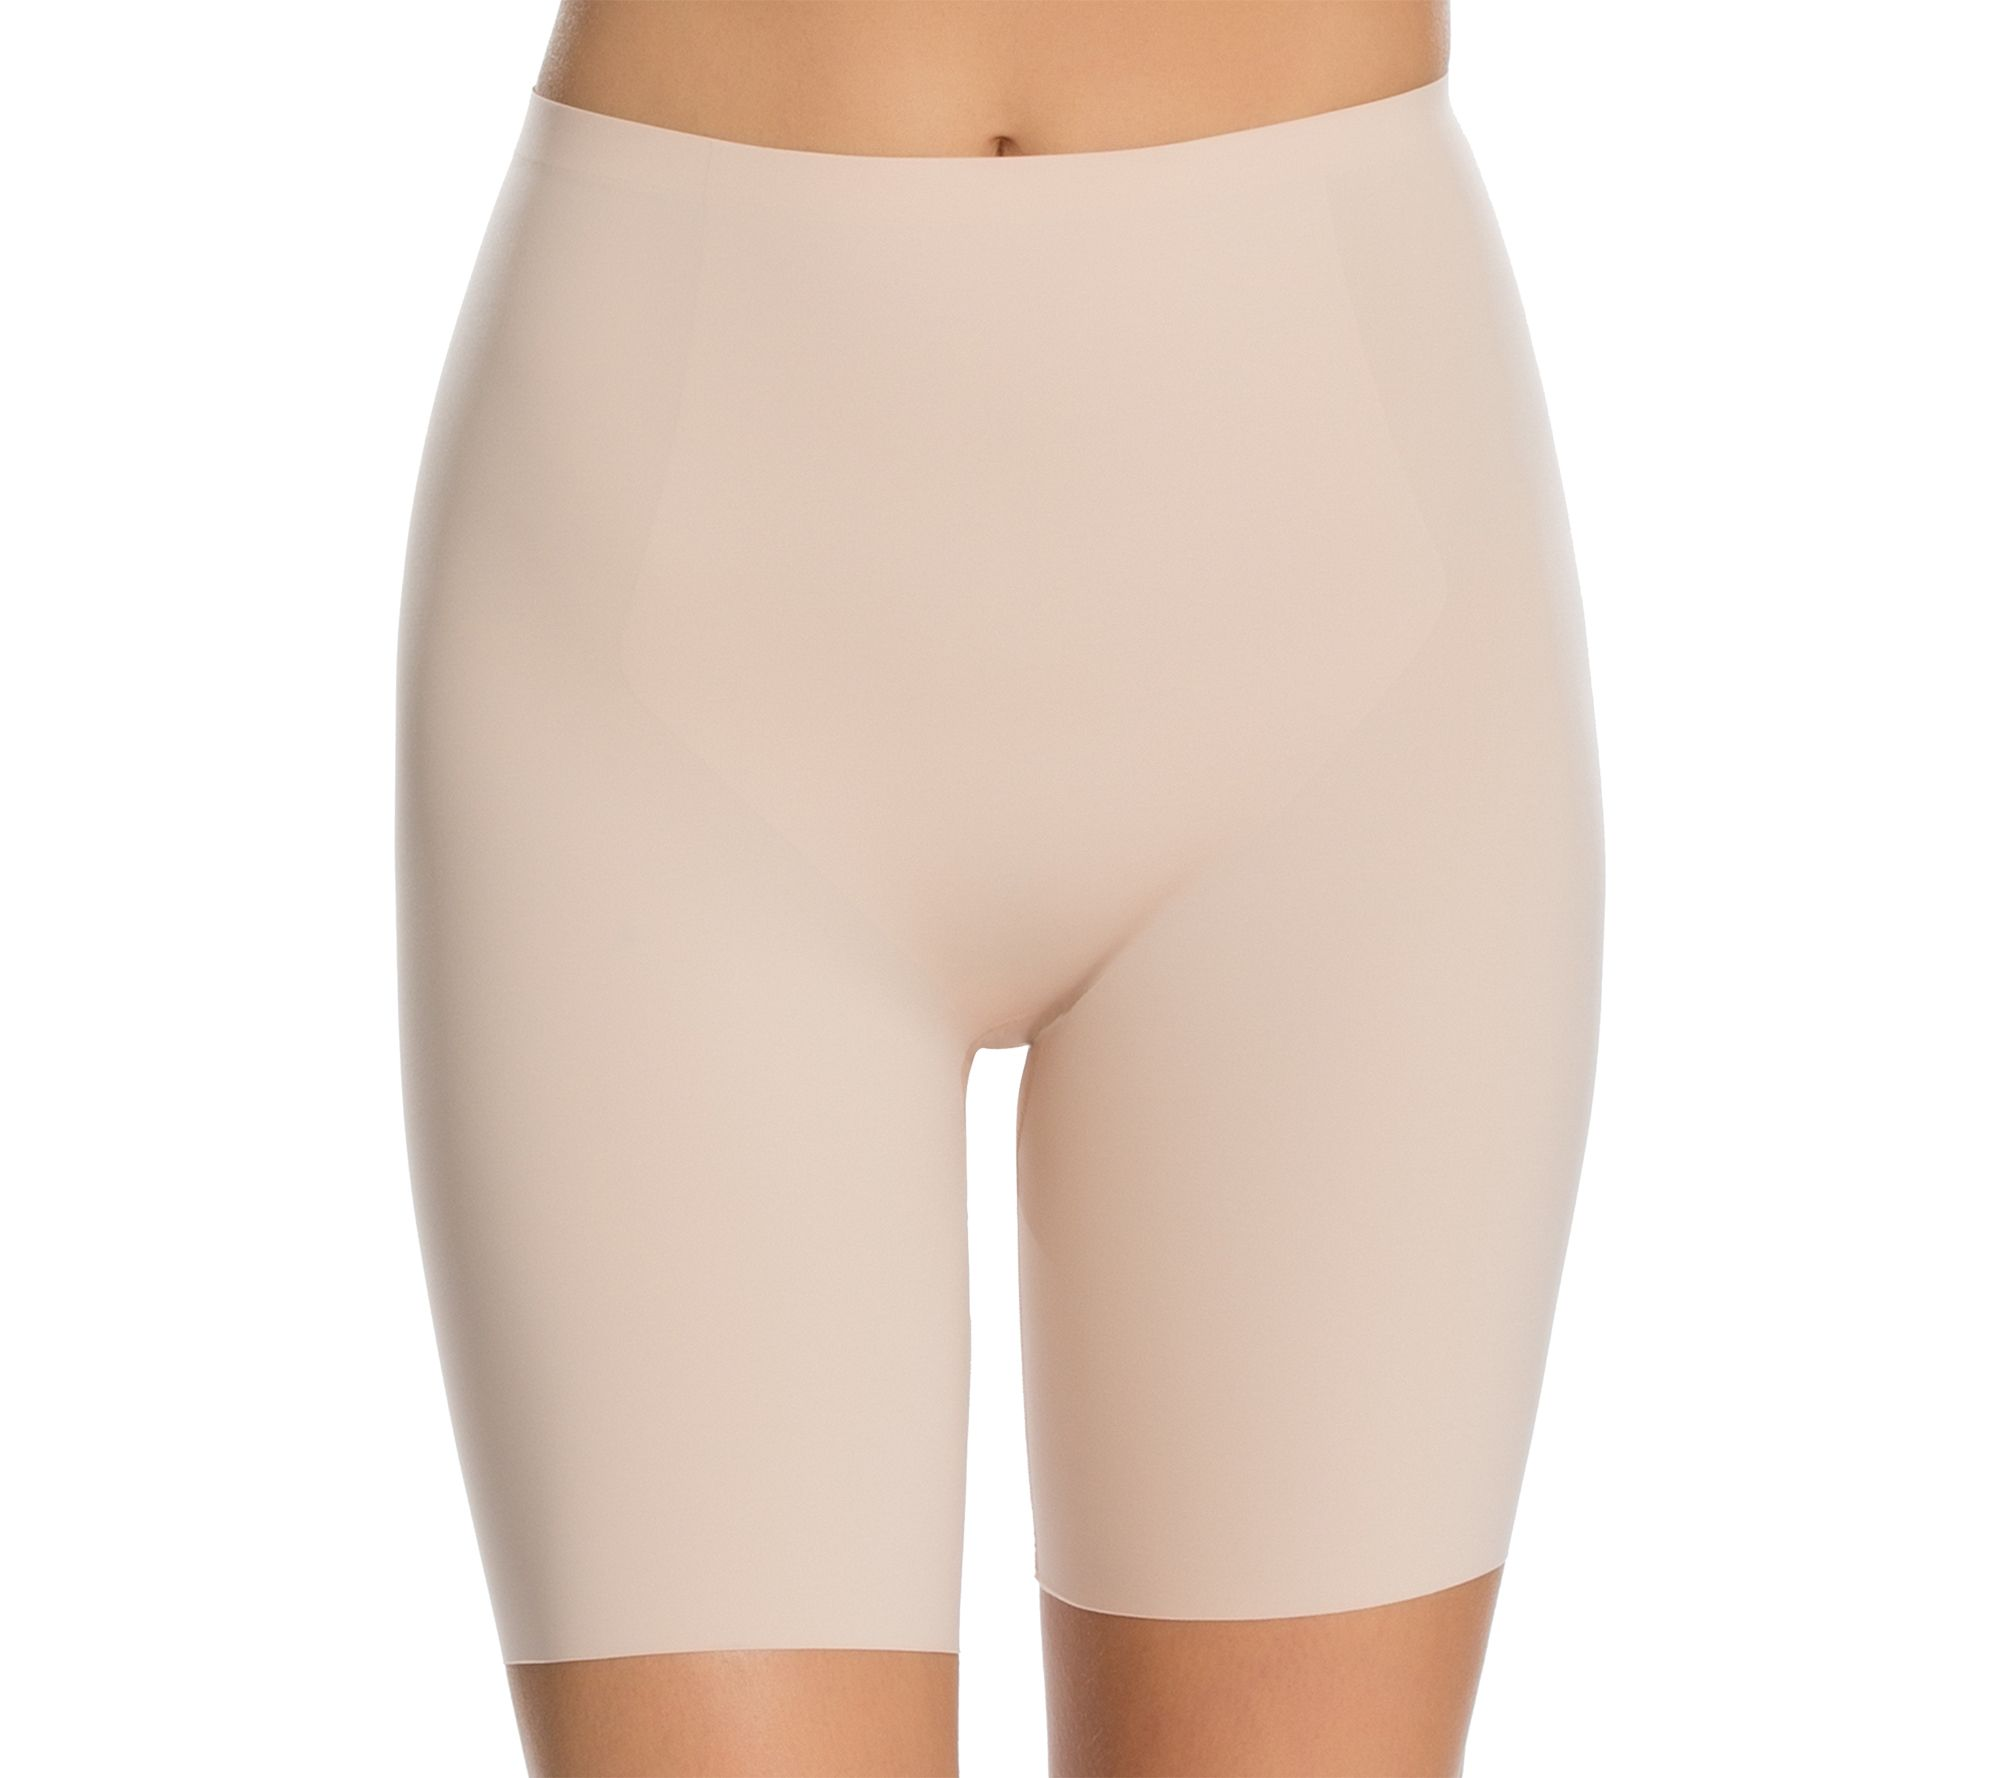 cec87a66a2 Spanx Trust Your Thinstincts Mid-Thigh Shaping Short - Page 1 — QVC.com